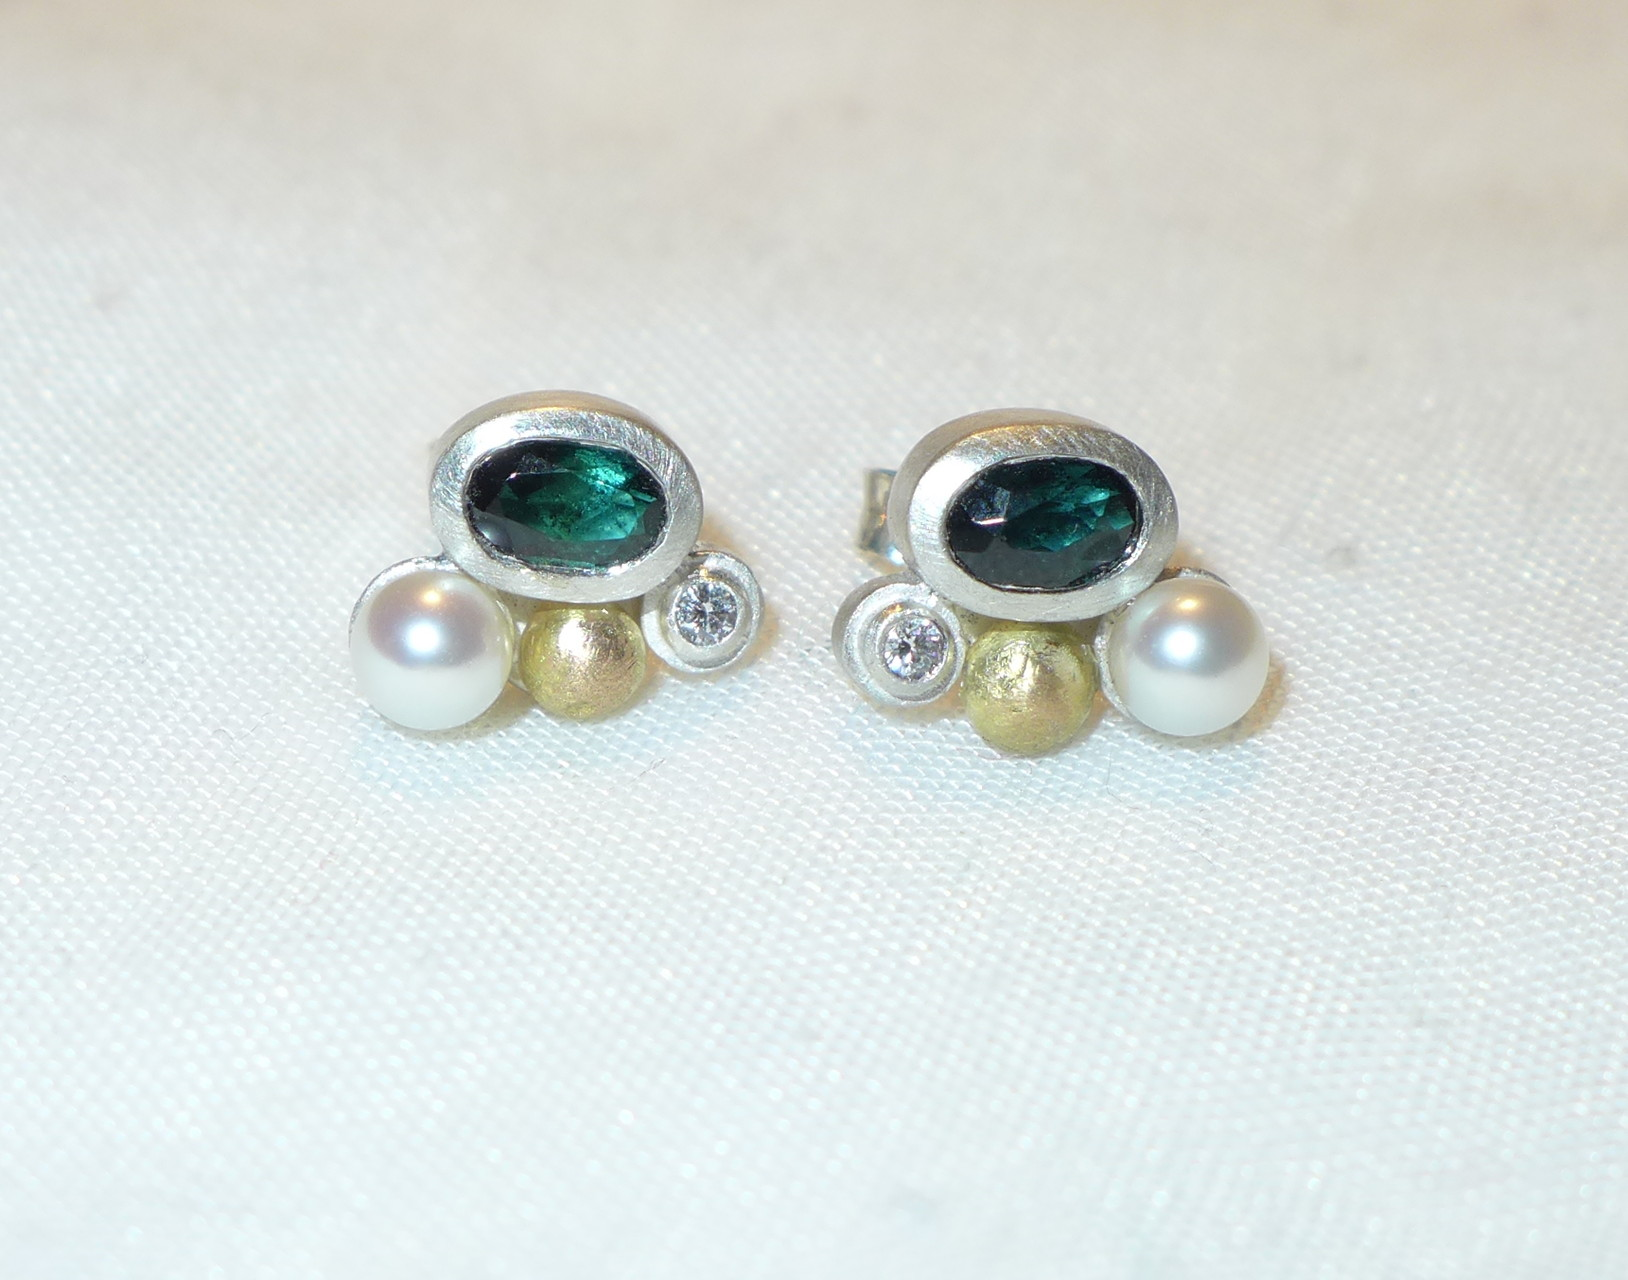 Studs, sterling silver, 18k gold, fine gold, tourmaline, pearl, diamond